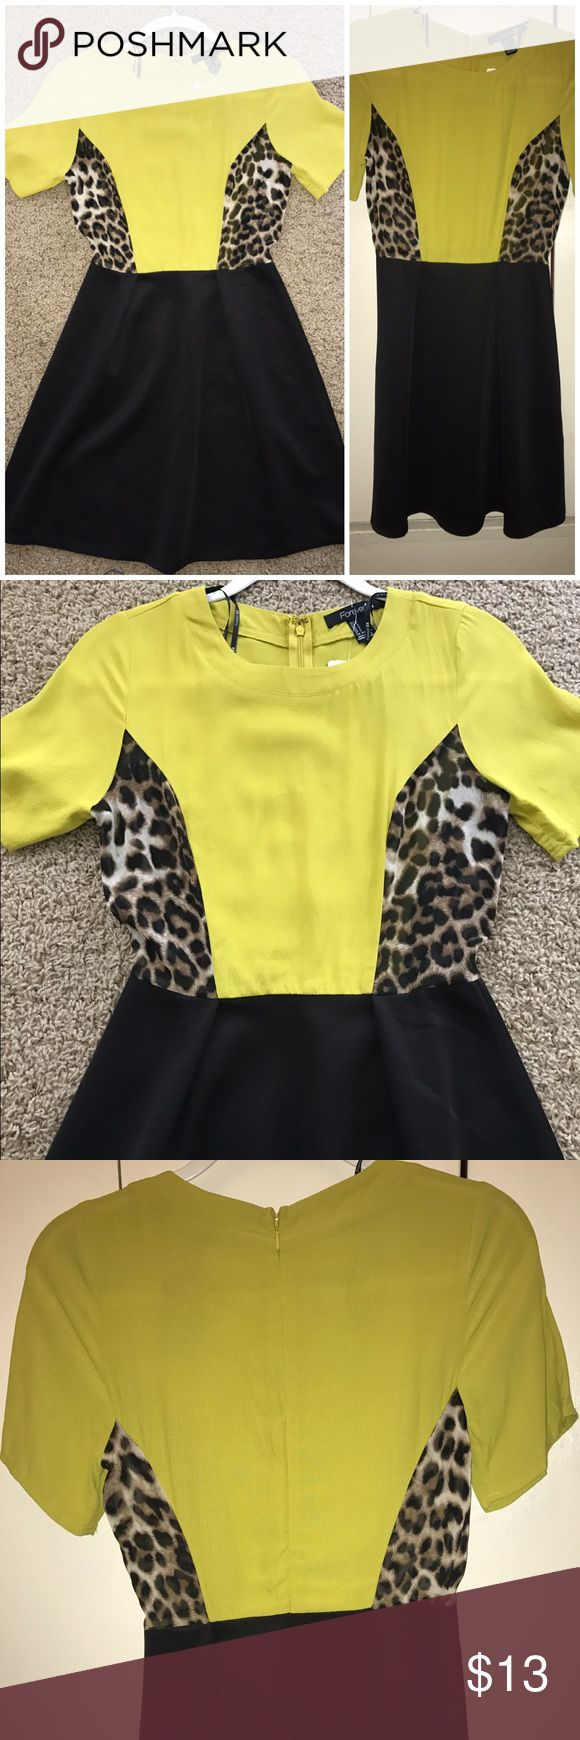 Yellow/leopard print mixed scuba skirt dress NWT from Forever 21! Never worn! The top is a chartreuse yellow color and a faux silk material. The sides have a slightly sheer leopard print pattern which makes it so fun! Lastly, the attached skirt is an easy scuba fabric. Forever 21 Dresses